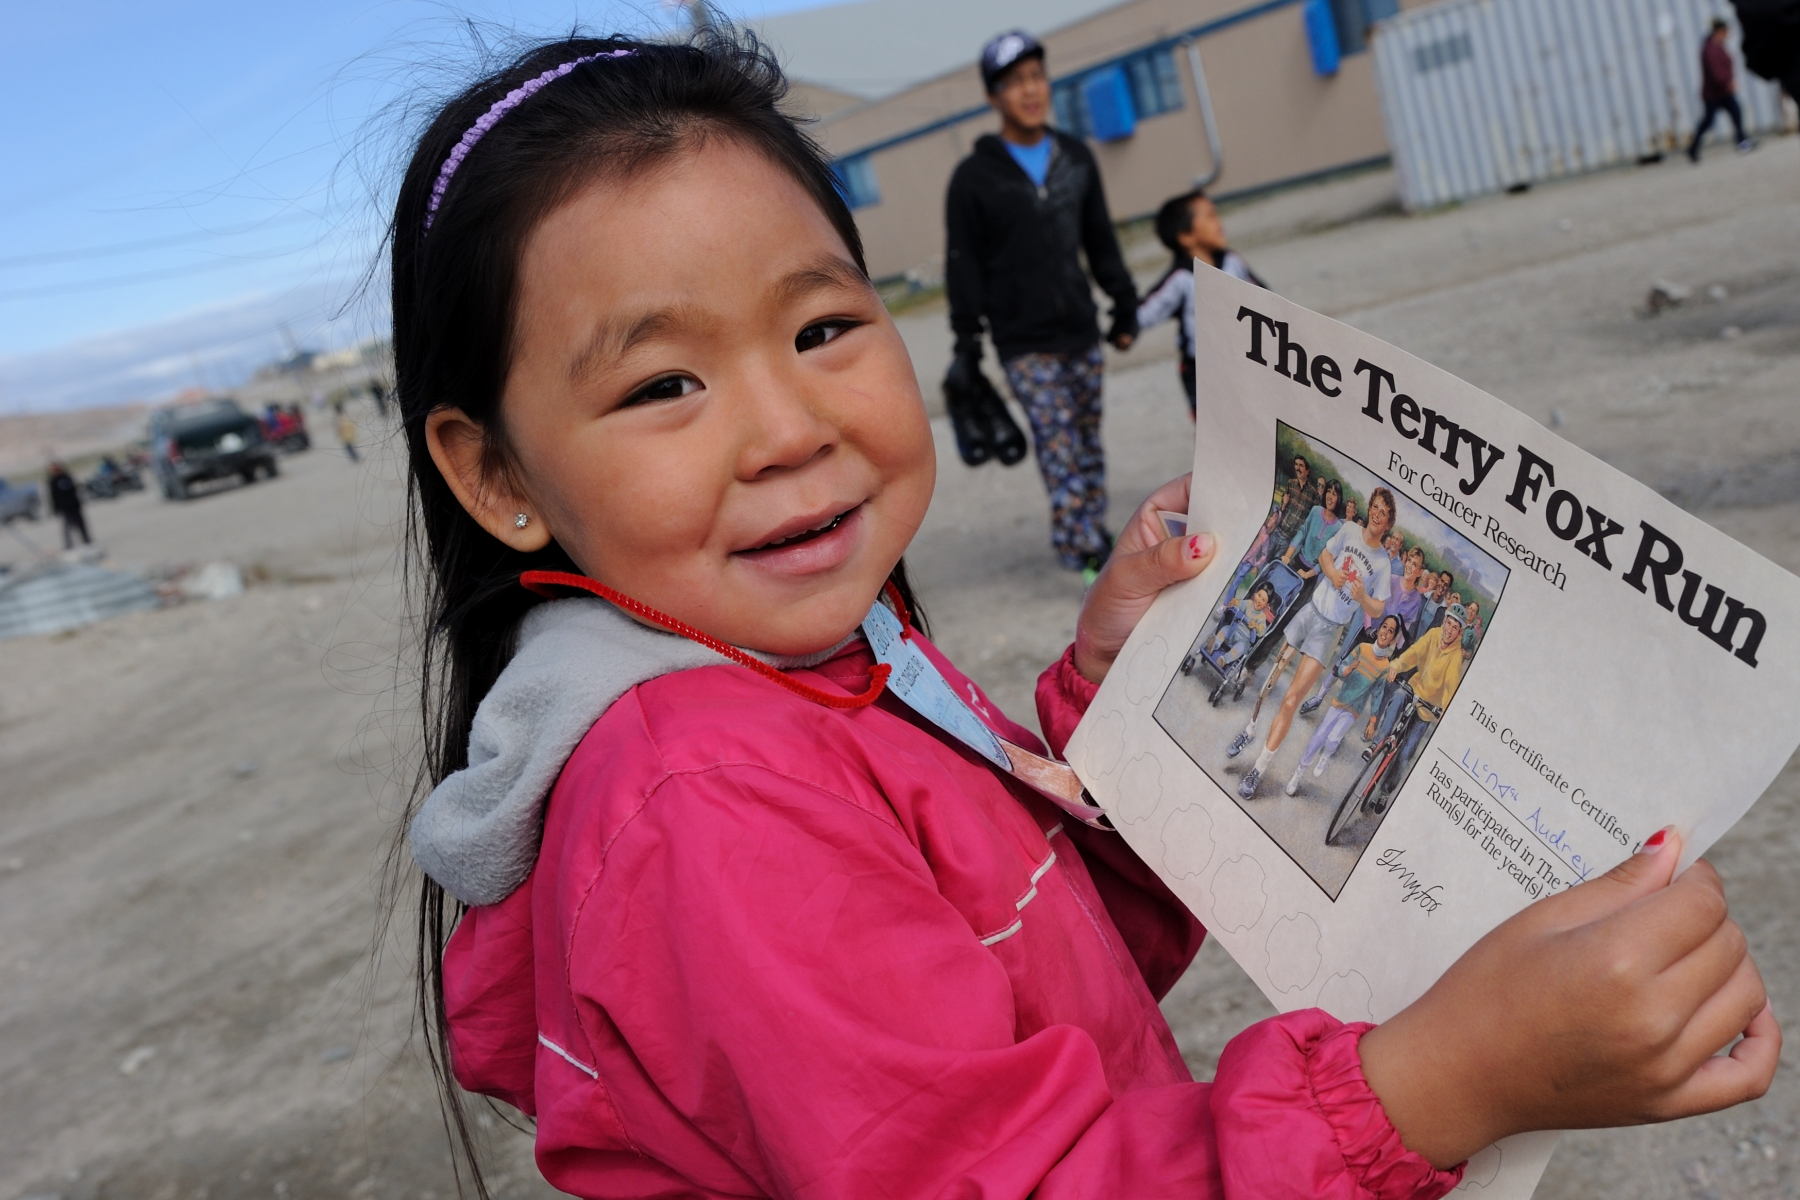 Audrey, a young student at the Tusarvik School, received a certificate for her participation in the Terry Fox School Run.